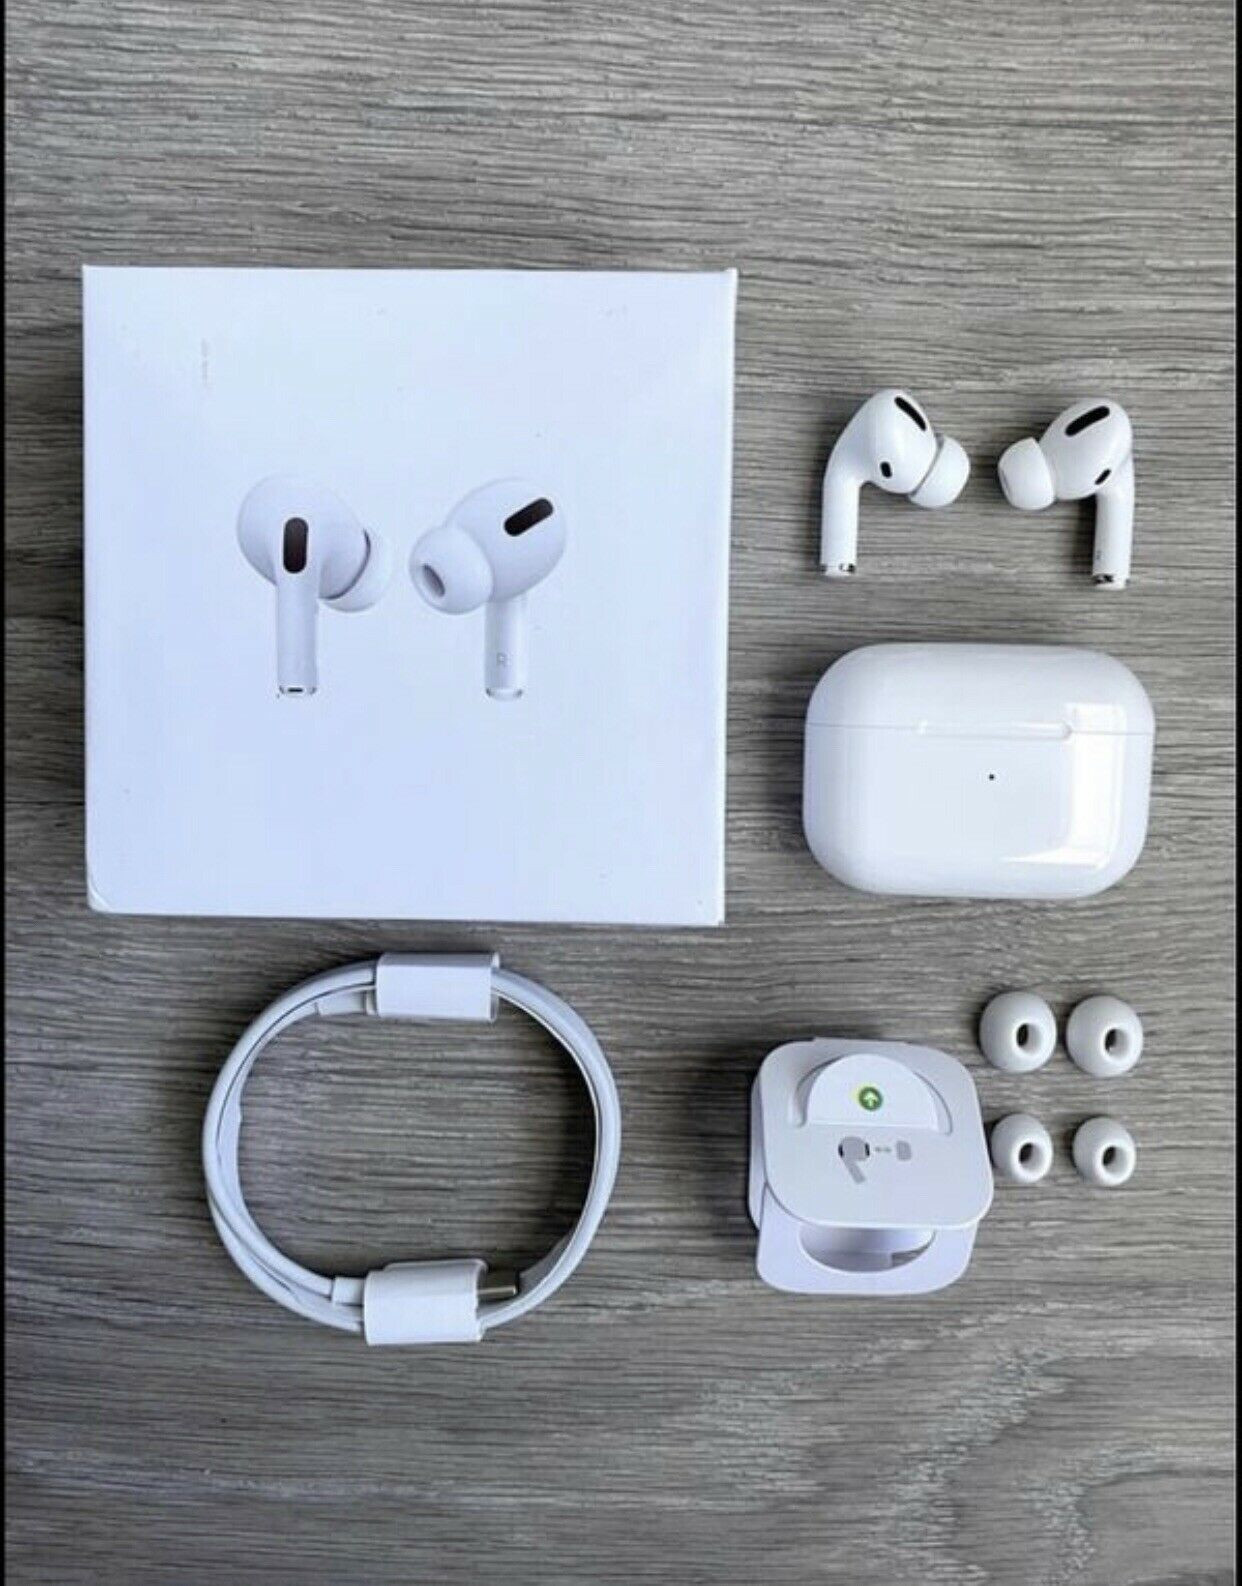 Apple AirPods Pro, Airpods 2nd Gen with Wireless Charging Case - ORIGINAL ( BUY 20 GET 10 FREE )